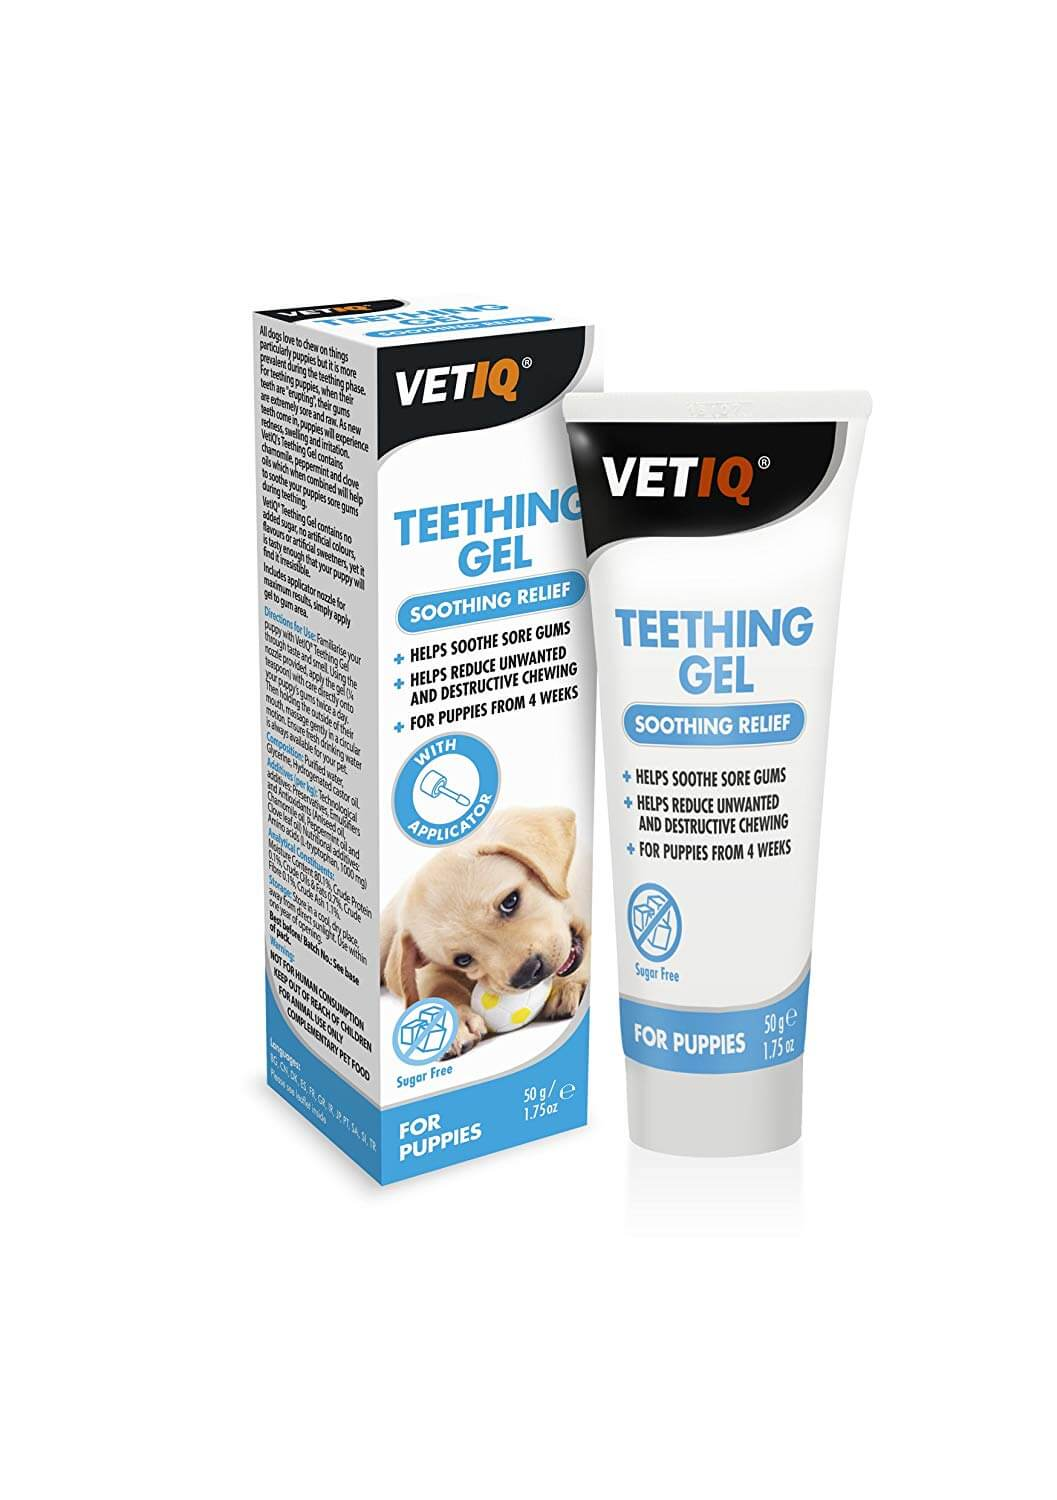 Puppy teething gel